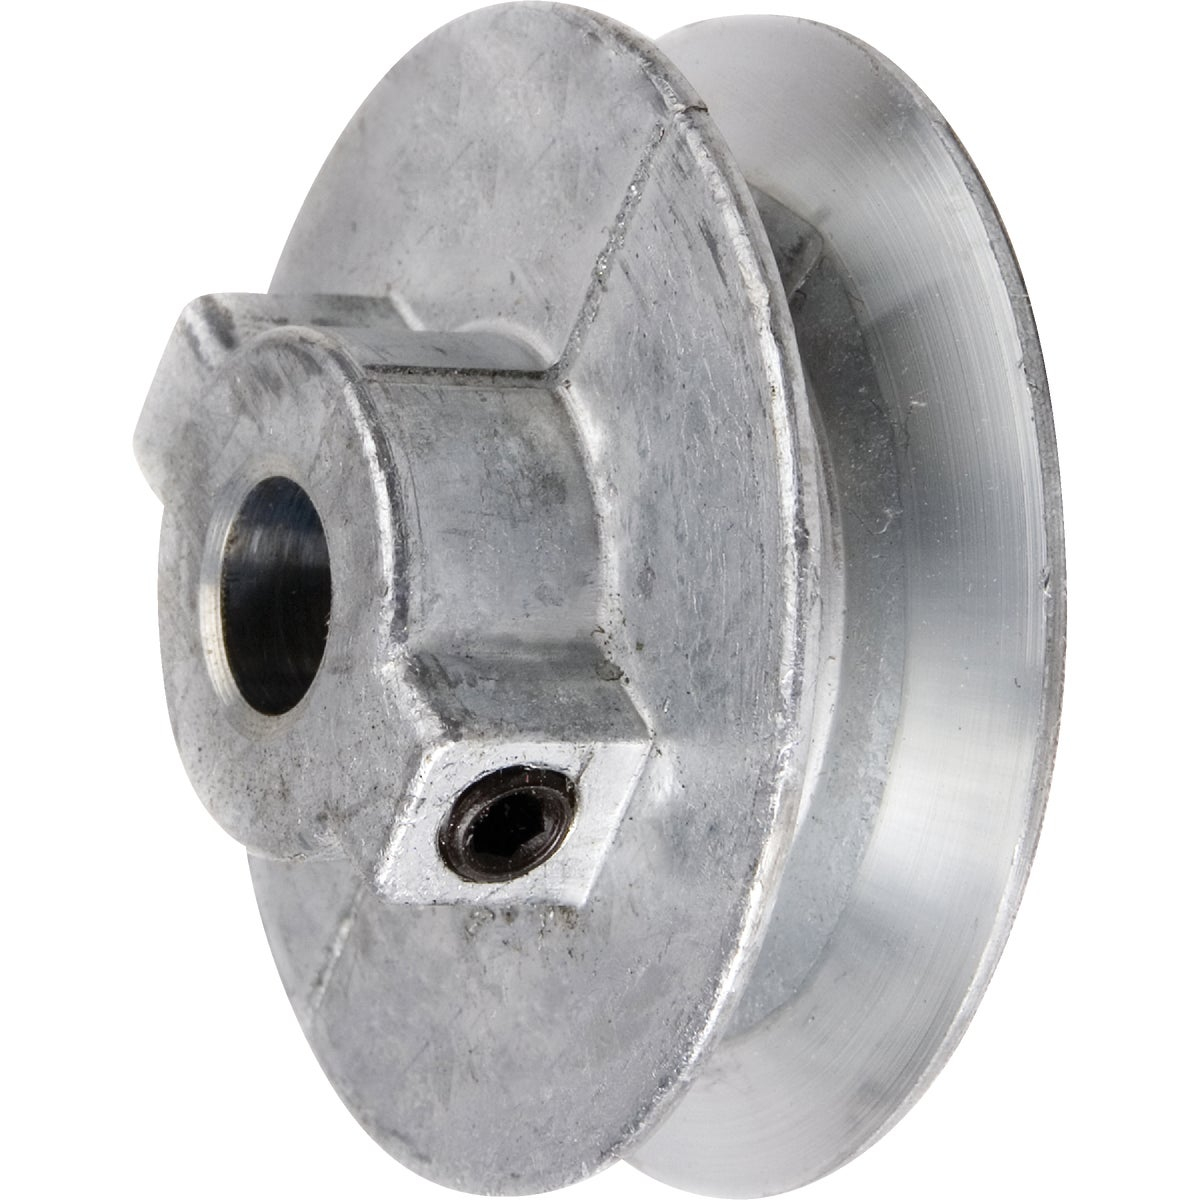 3-1/2X3/4 PULLEY - 350A7 by Chicago Die Casting